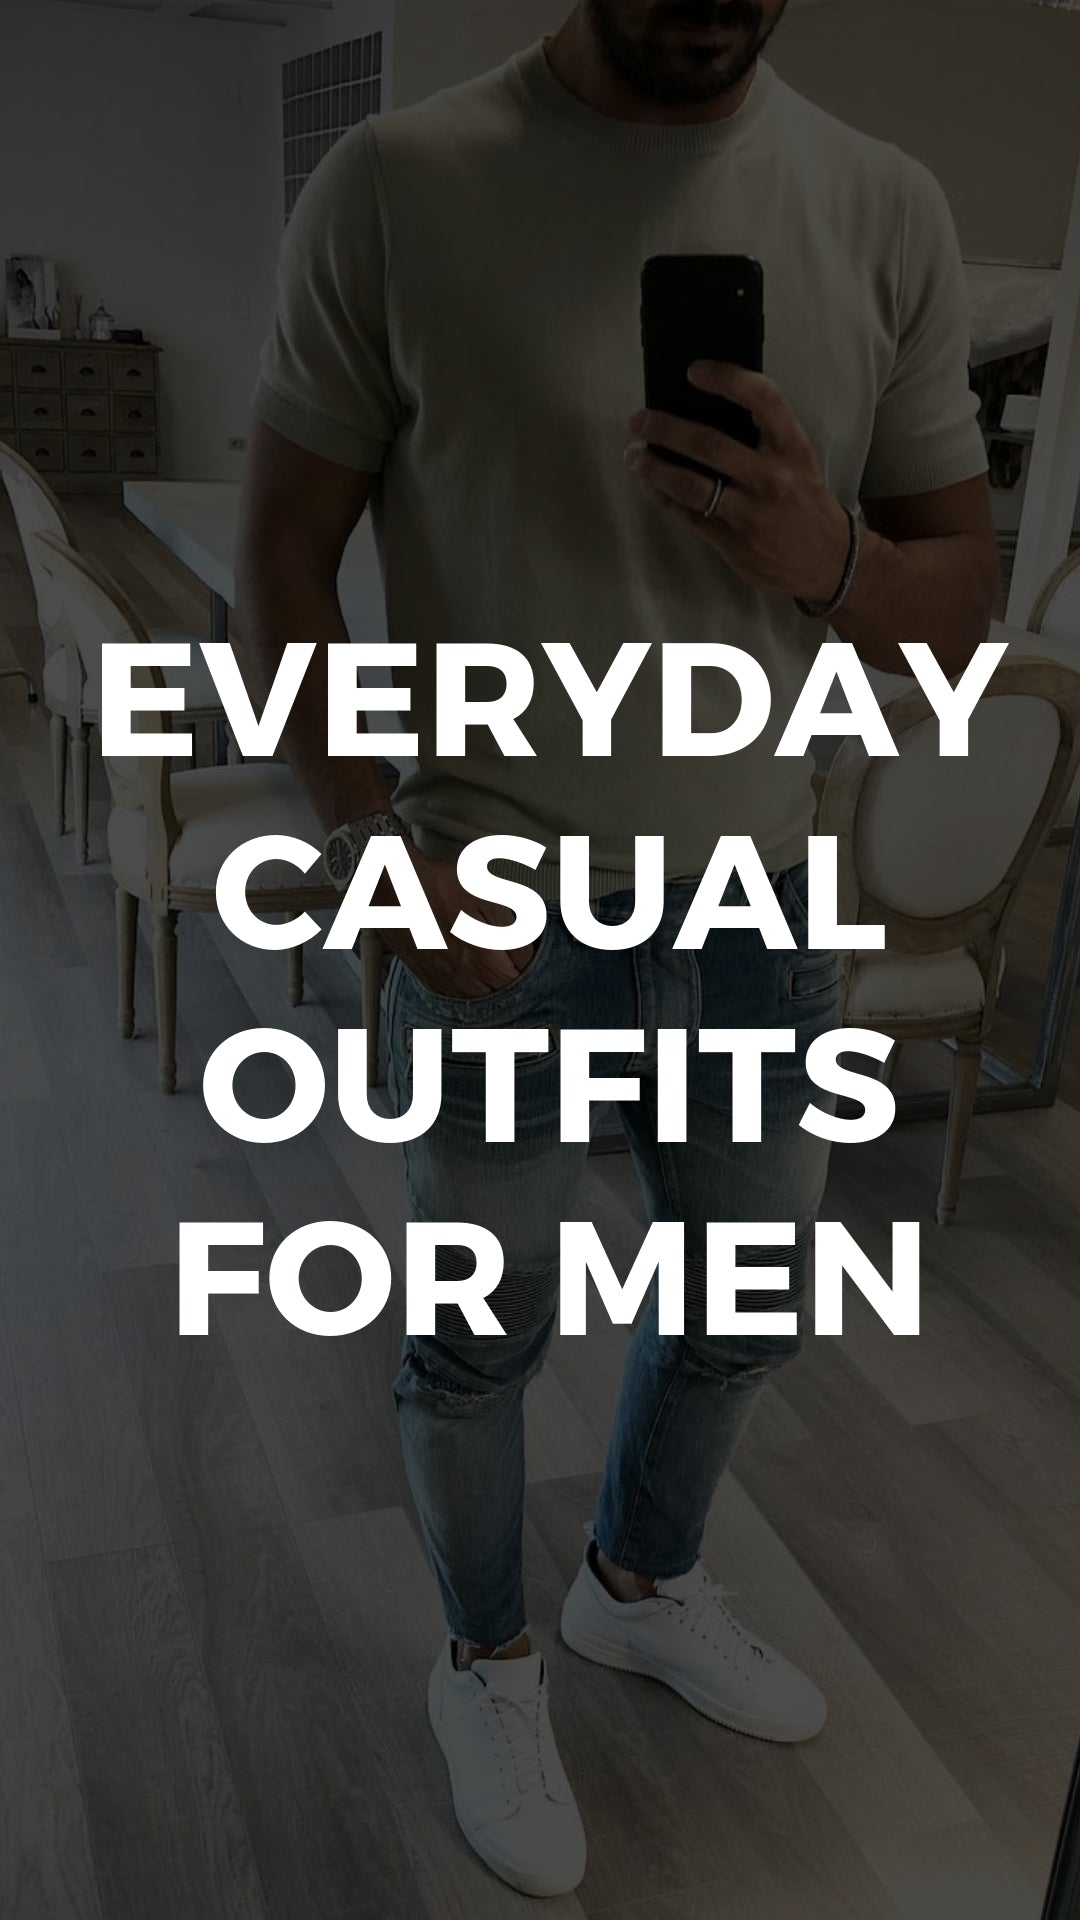 5 Daily Wear Casual Outfits For Men #casual #outfits #mensfashion #streetstyle